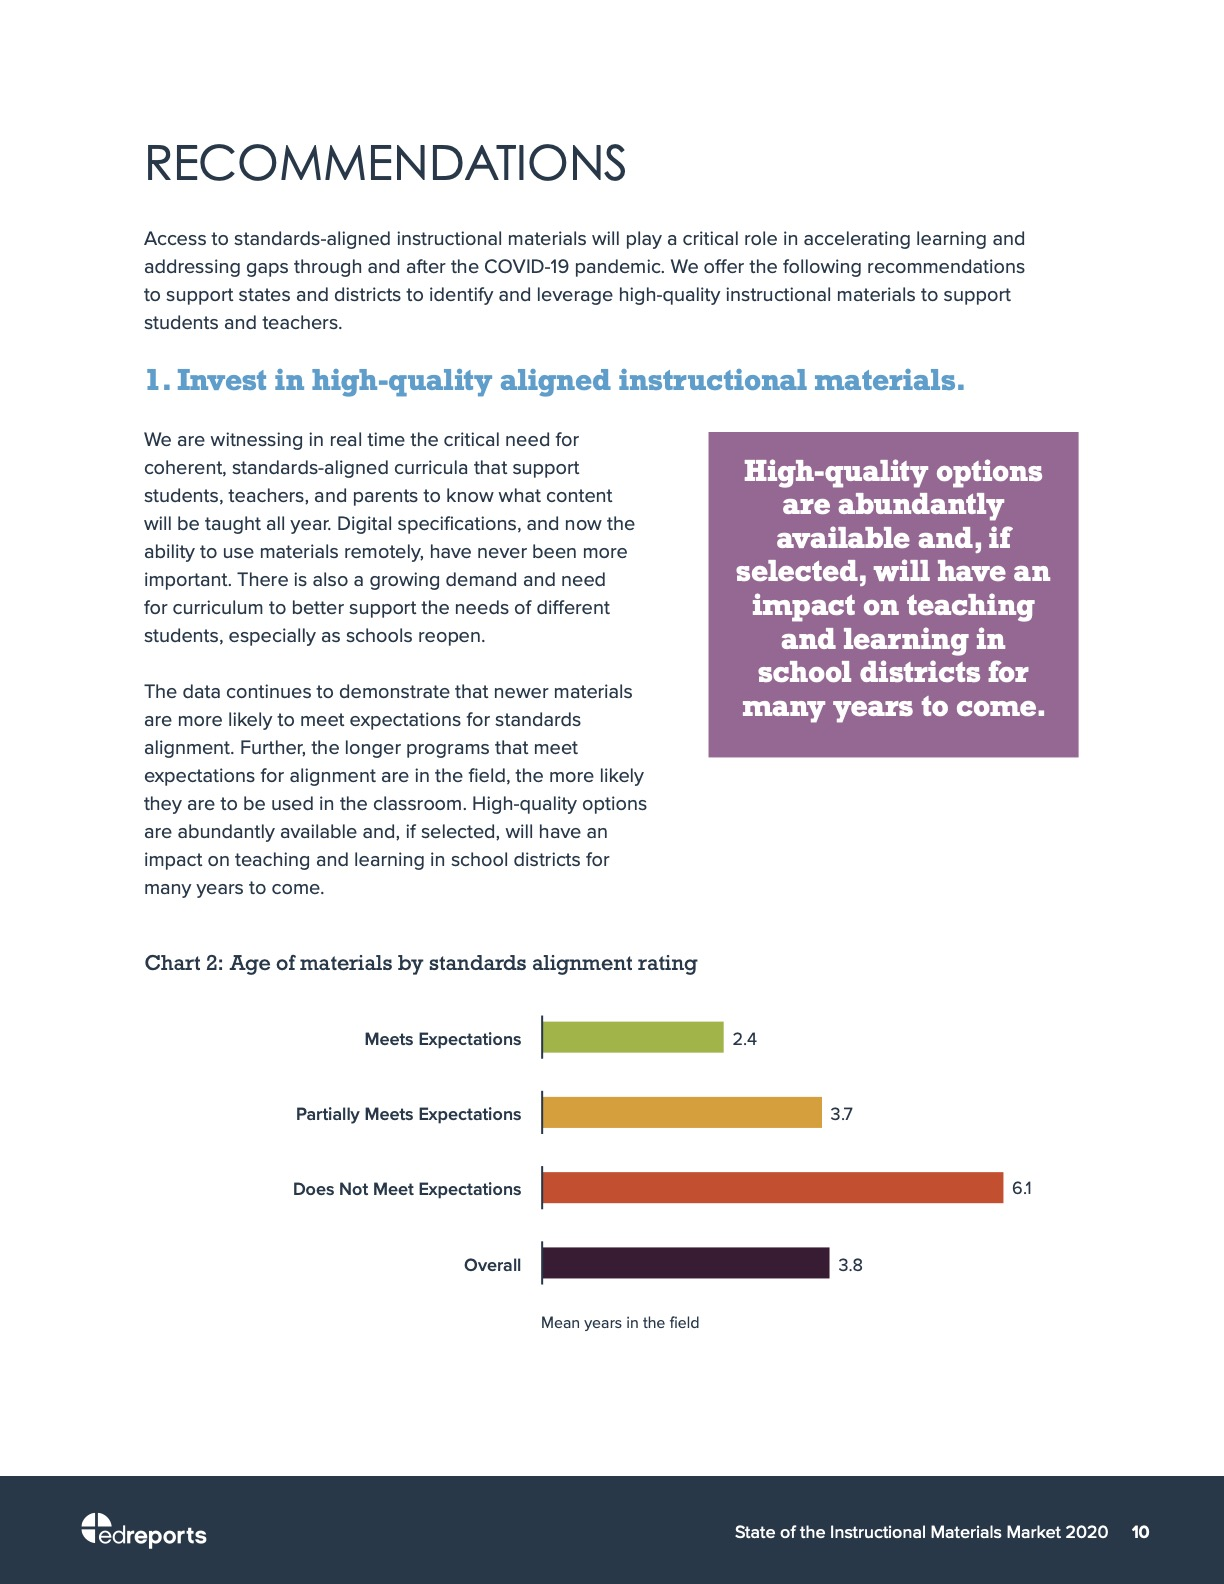 EdReports-2020-State-of-the-Market-Use-of-Aligned-Materials_FIN_10.jpg